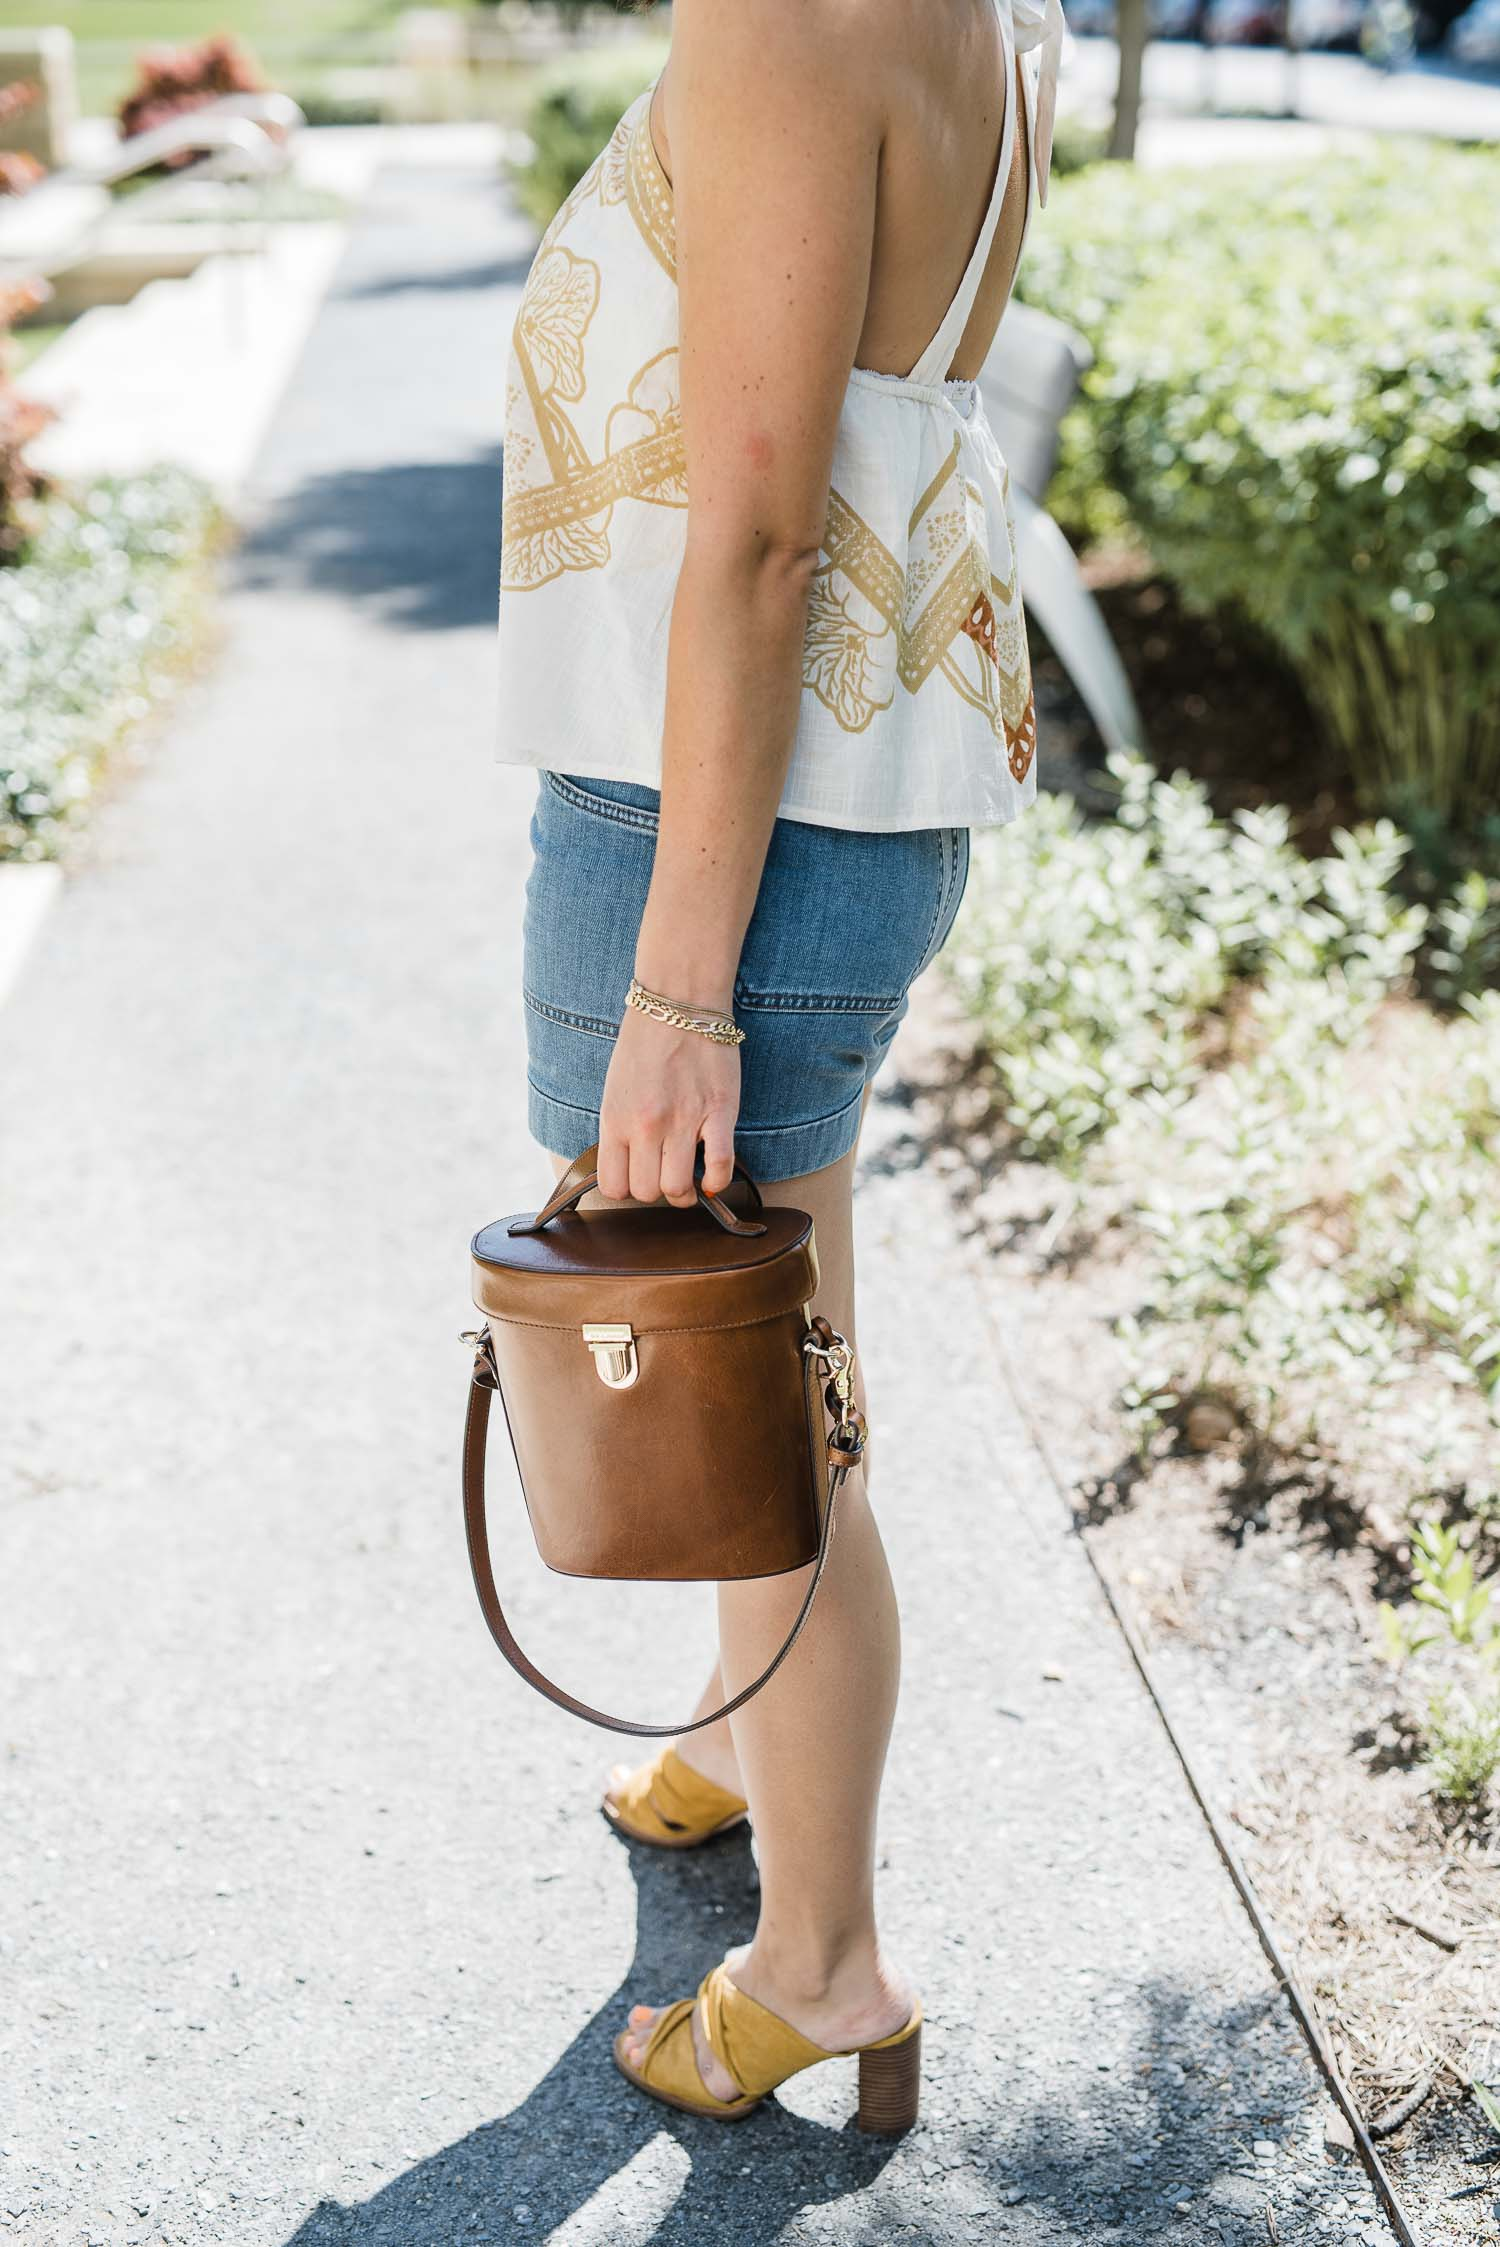 OUTFIT DEATAILS: FREE PEOPLE CABANA TOP • MADEWELL CHASE SHORTS • MADEWELL GESINE MULES • BRAHMIN BAG